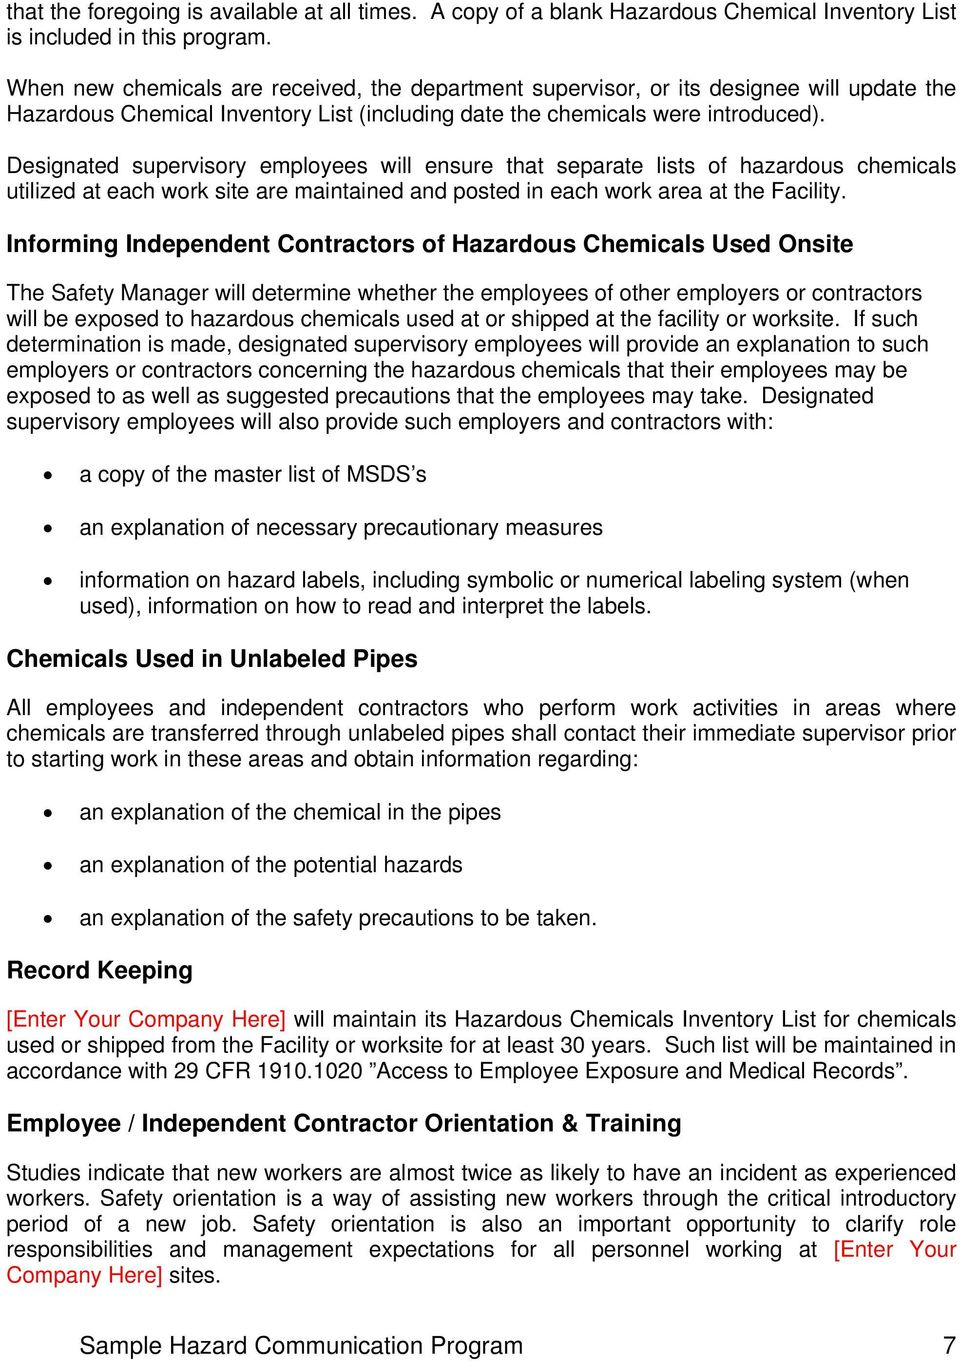 Designated supervisory employees will ensure that separate lists of hazardous chemicals utilized at each work site are maintained and posted in each work area at the Facility.